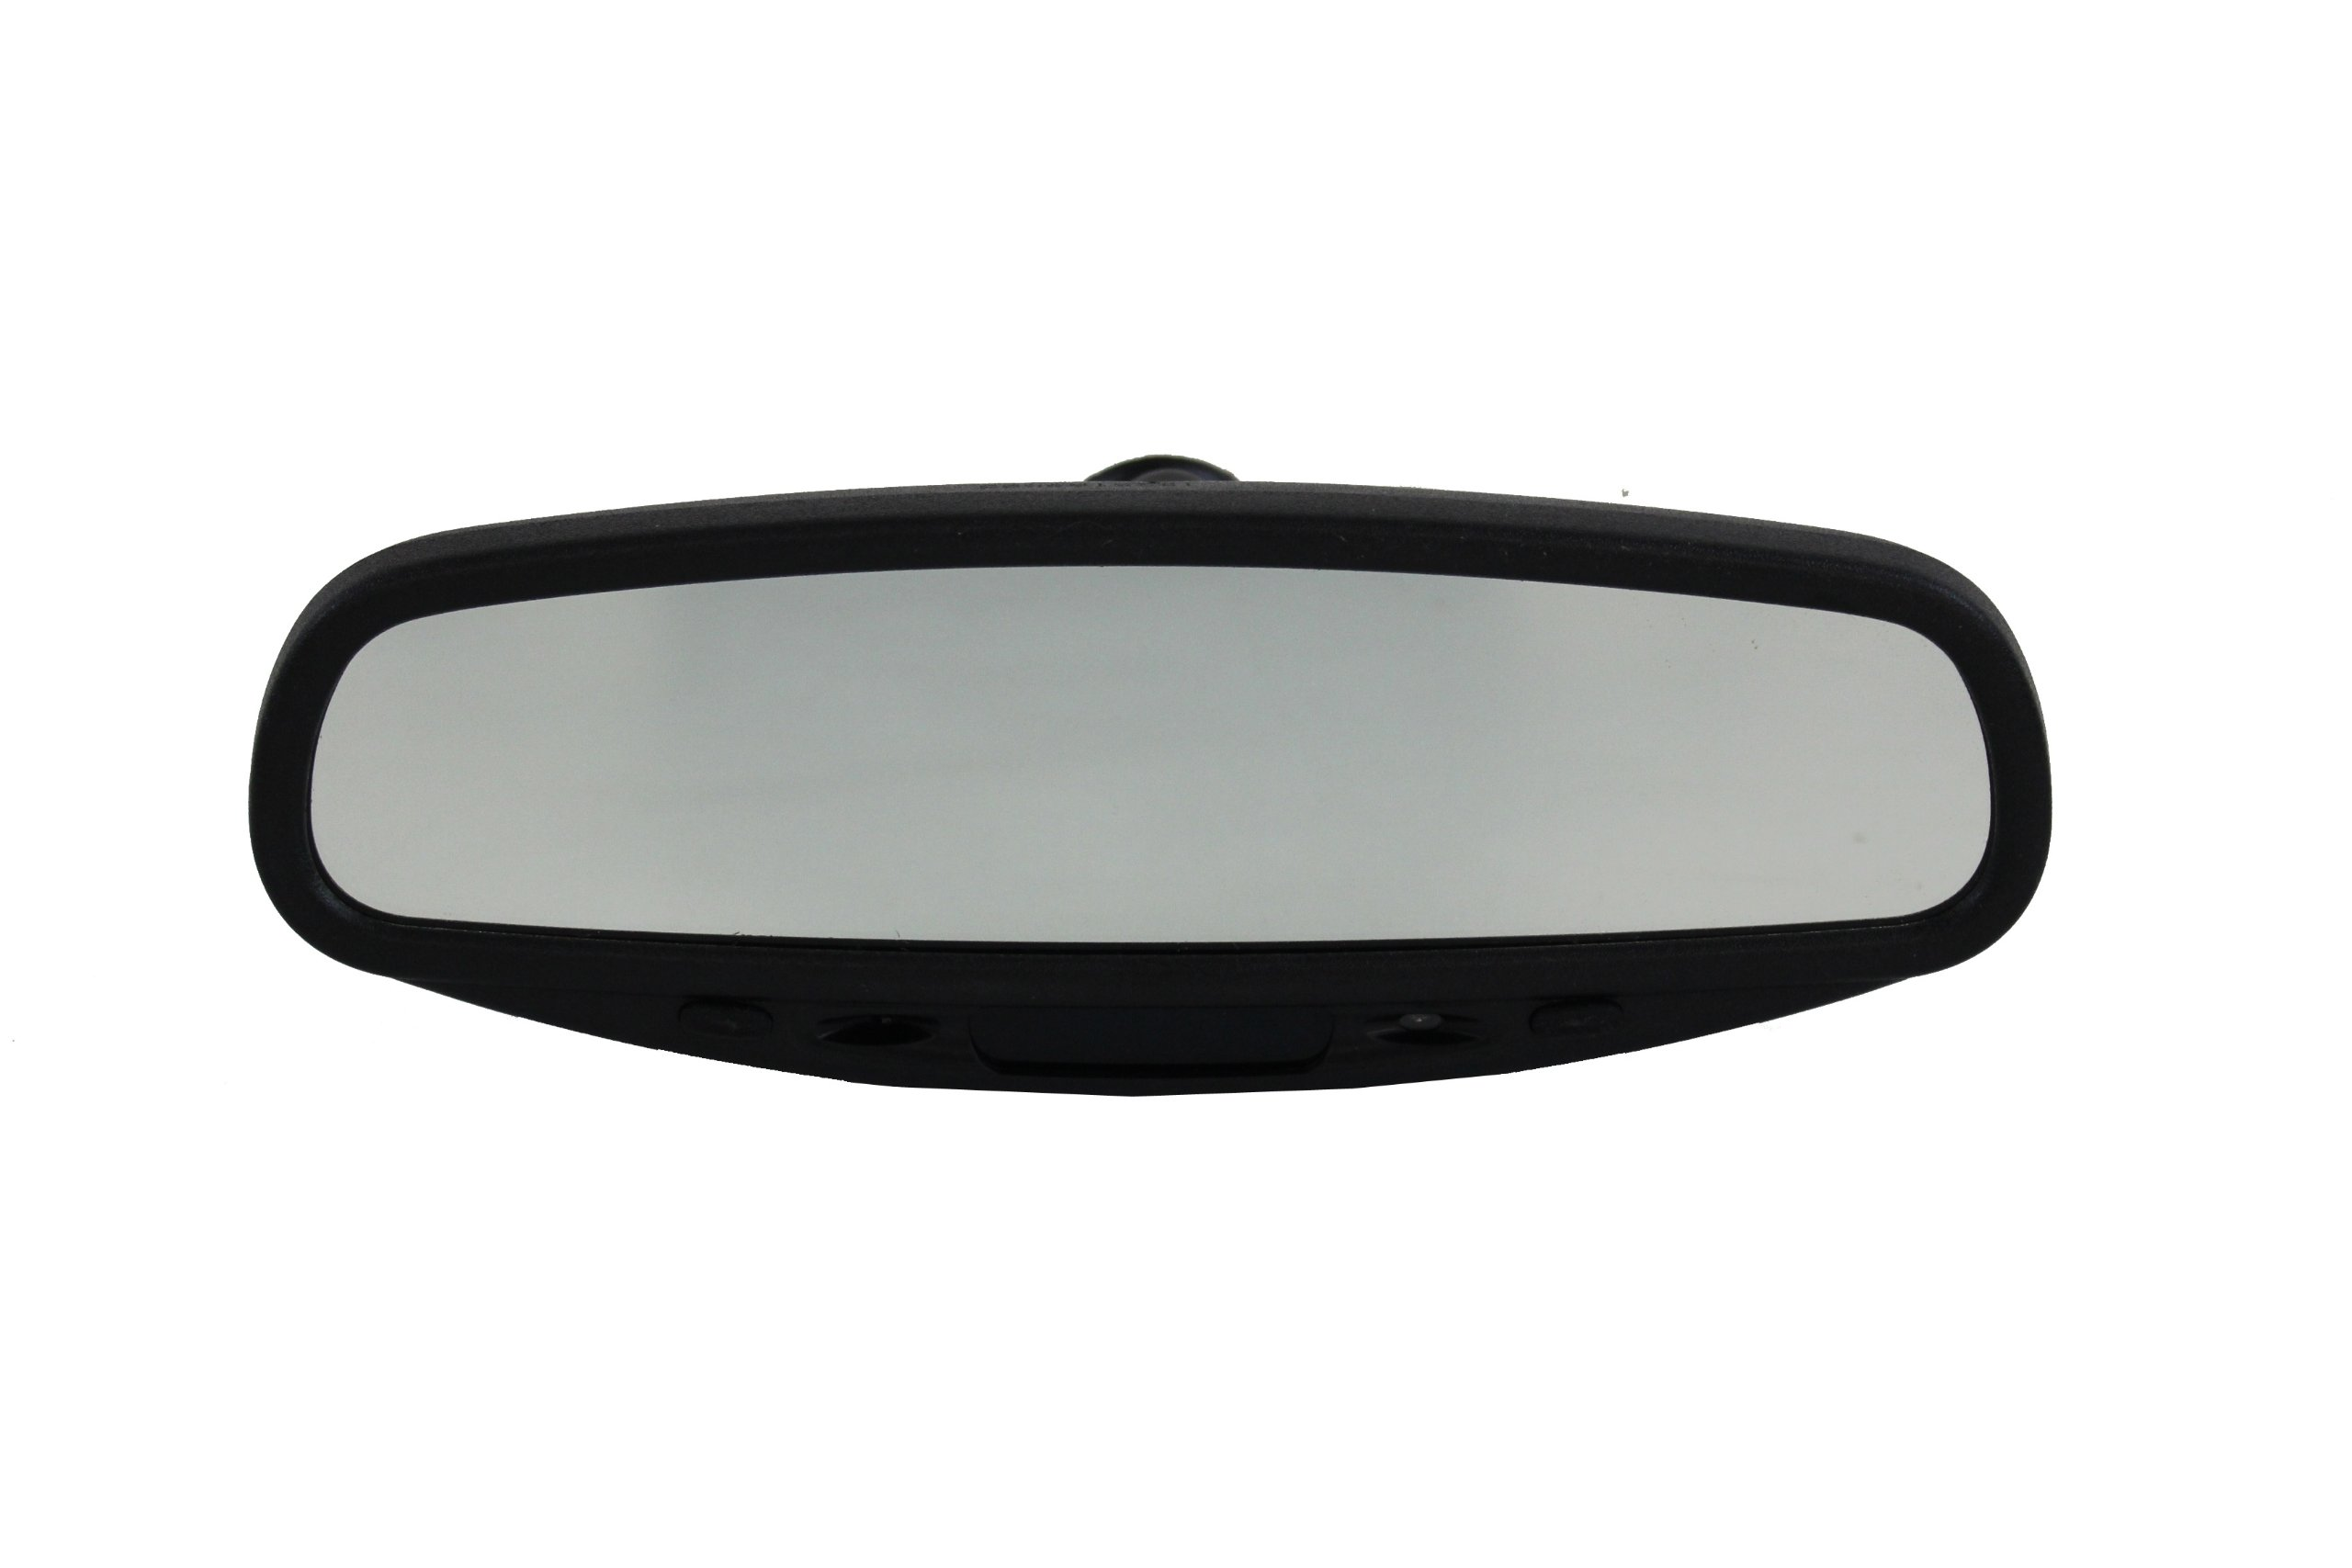 Honda Genuine Accessories 08V03-SDA-100B Auto Day/Night Mirror with Compass